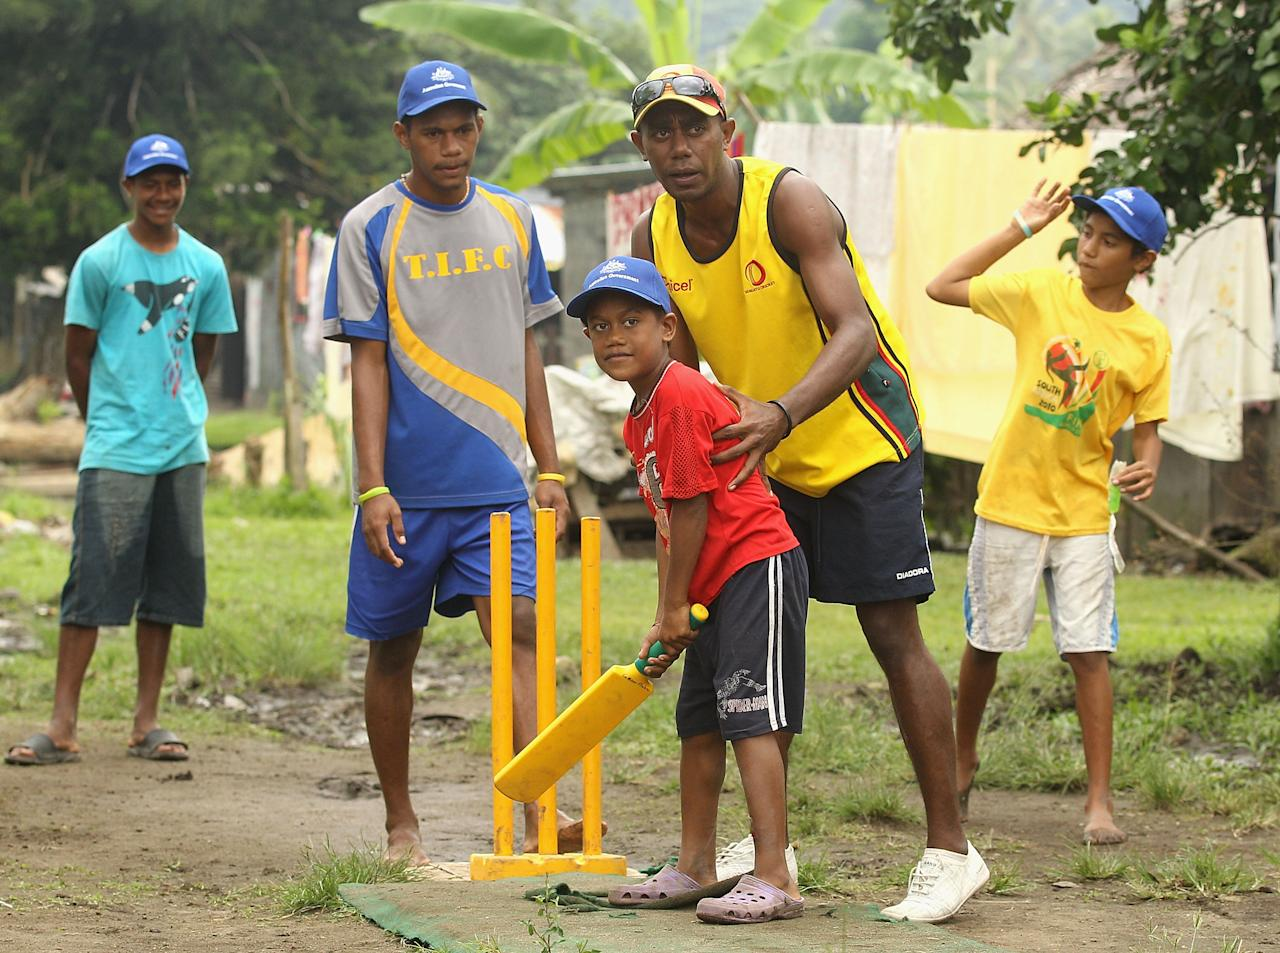 PORT VILA, VANUATU - MAY 16:  Local children play cricket with help from local instructors during an ICC Cricket Development Program Clinic in Mele Village on May 16, 2012 in Port Vila, Vanuatu.  (Photo by Hamish Blair/Getty Images)